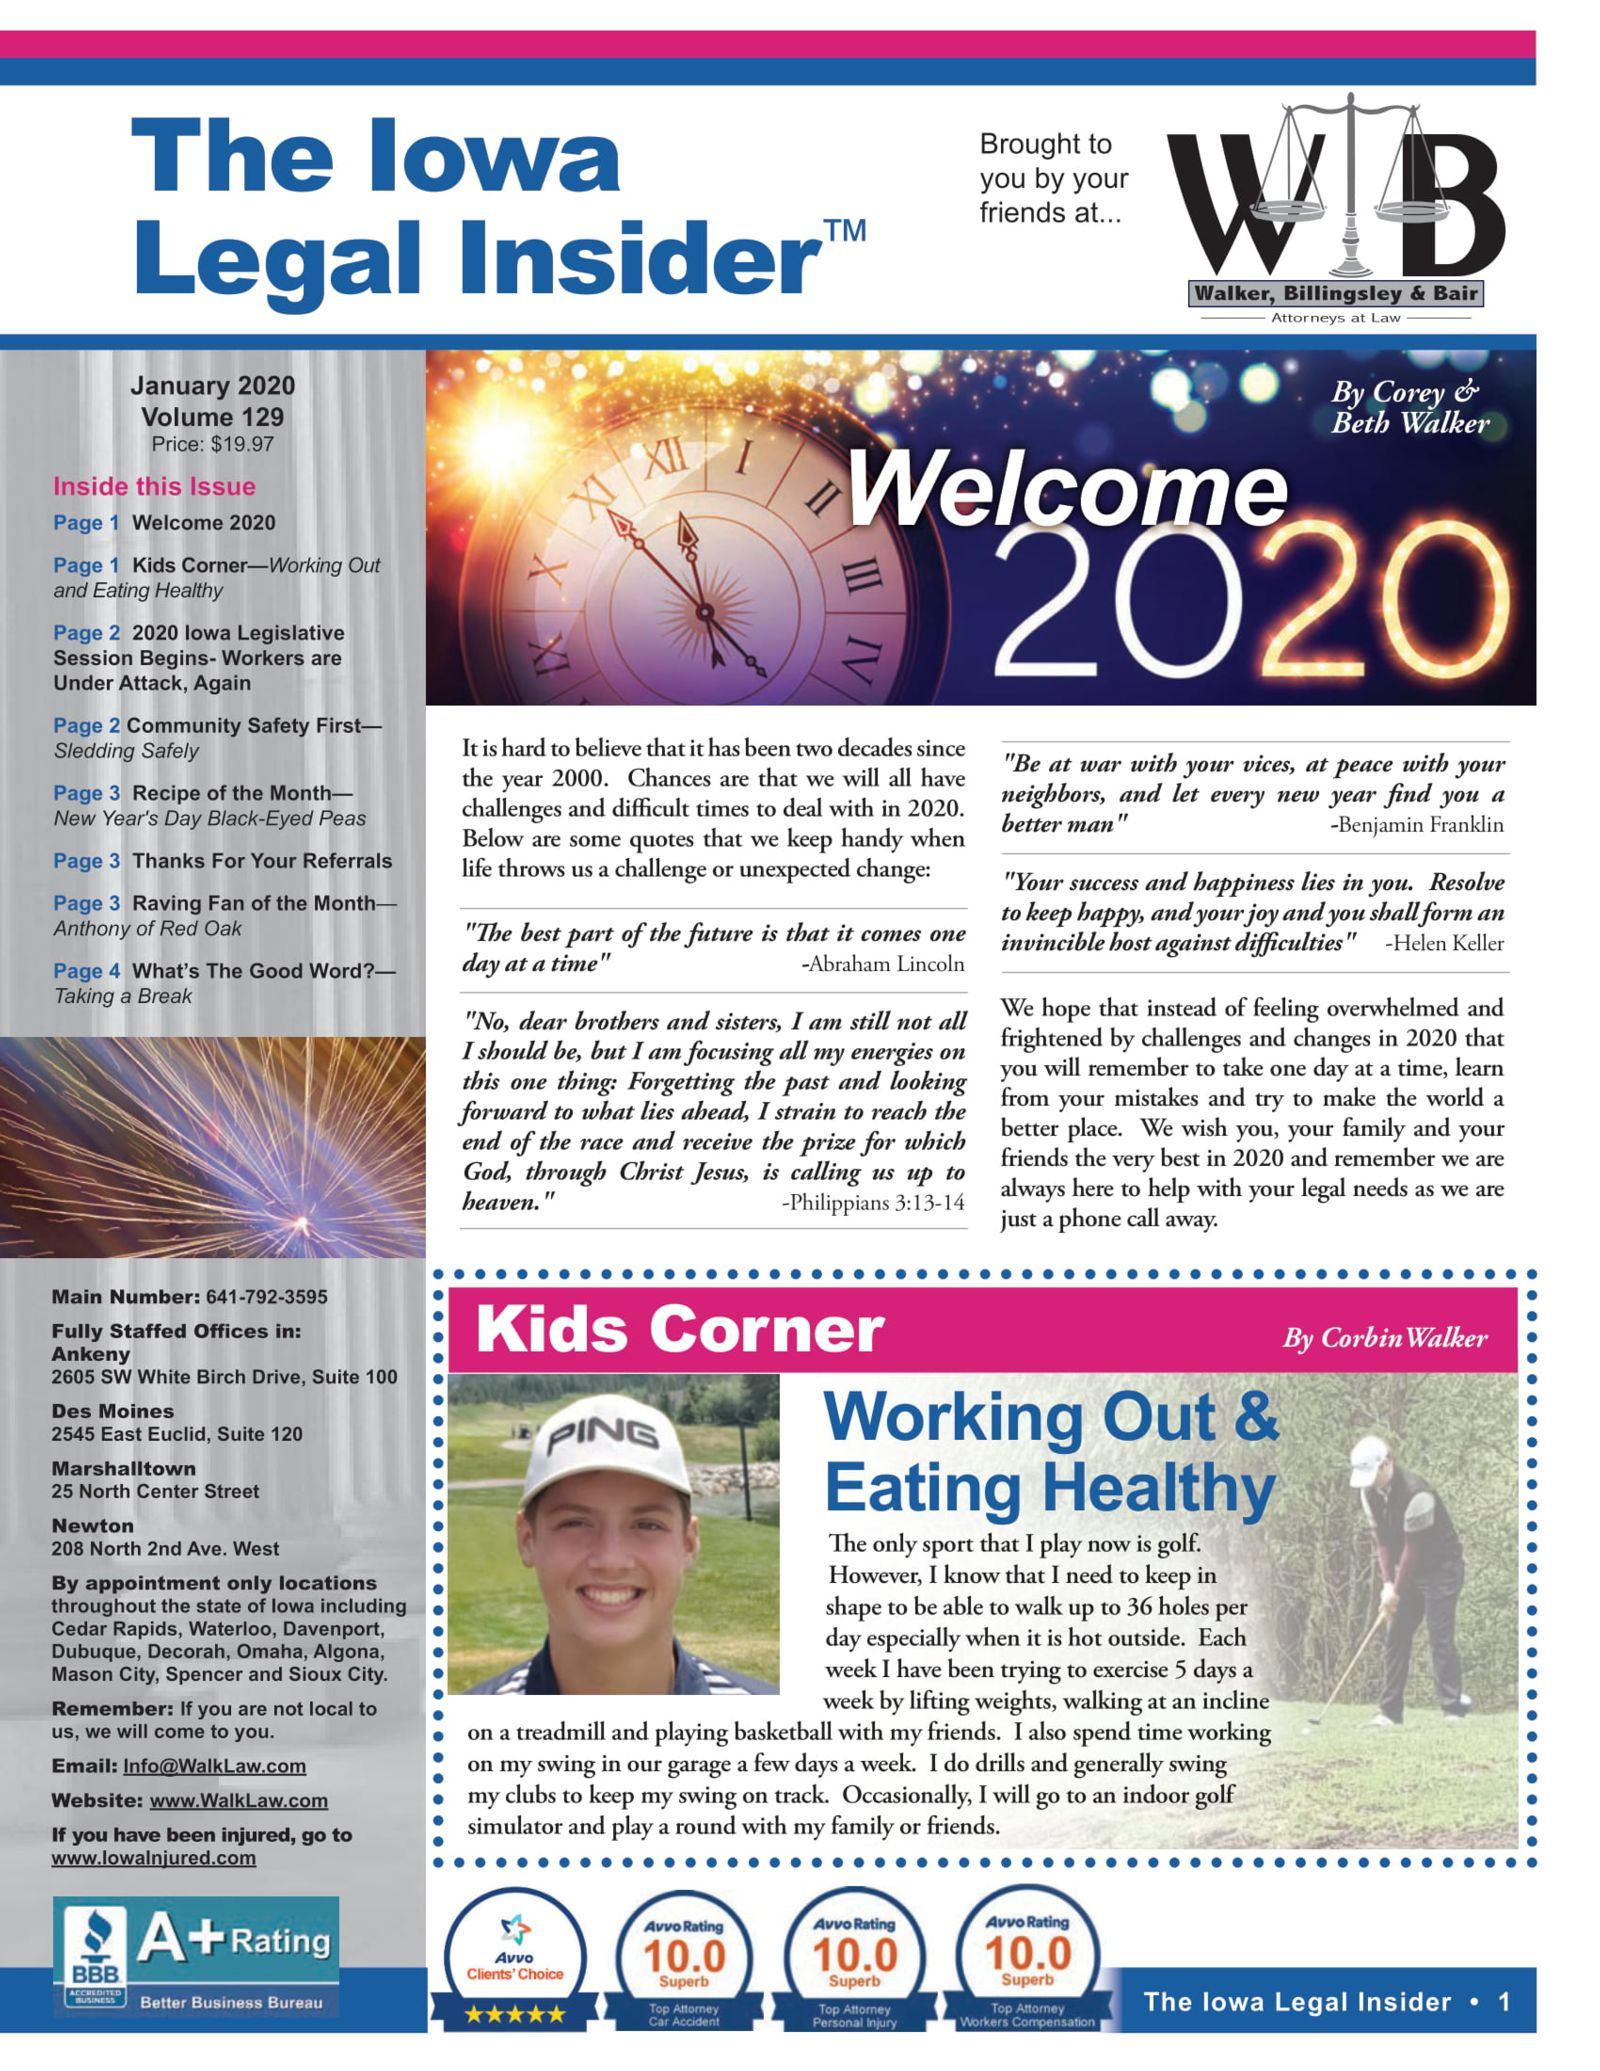 The iowa legal insider welcome to 2020 and working out